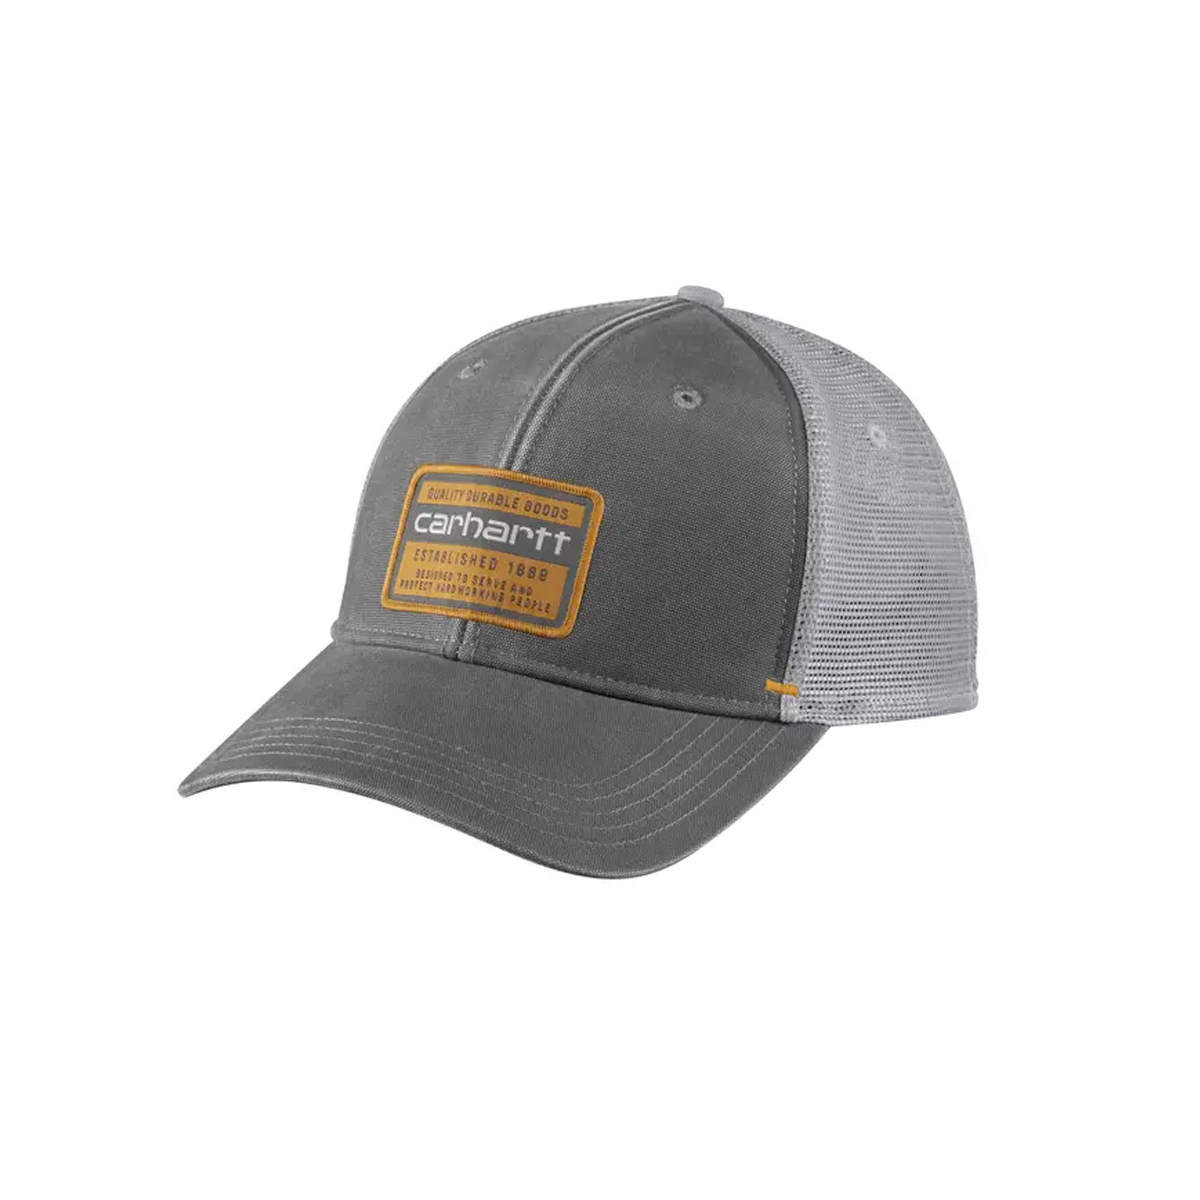 Men's Canvas Mesh Back Graphic Cap, Charcoal,Smoke,Steel, swatch